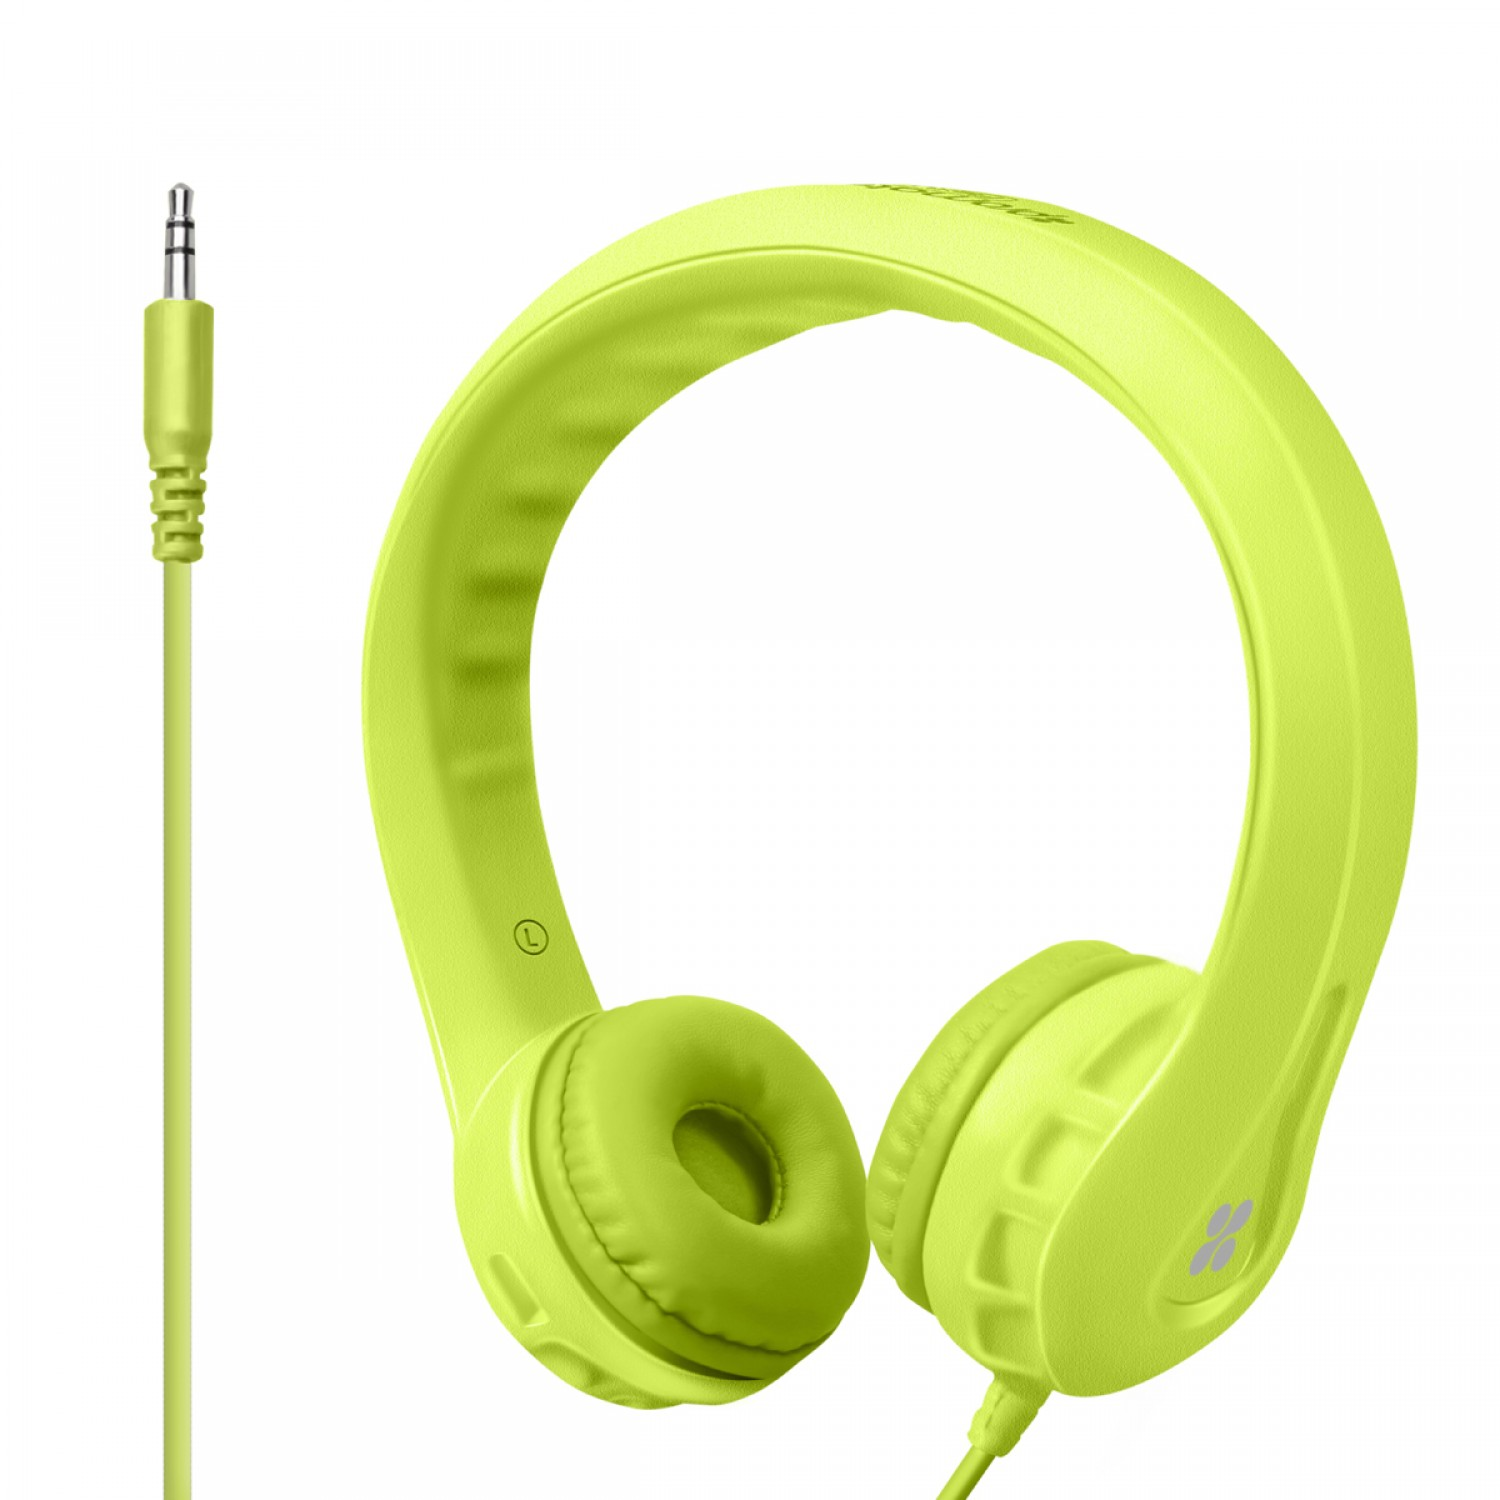 Promate Kids Headset, High Quality Volume Limited Wired Headphones with Child Safe Foam Headphones for Home, Travel, Smartphones PC Music Gaming, Flexure GREEN